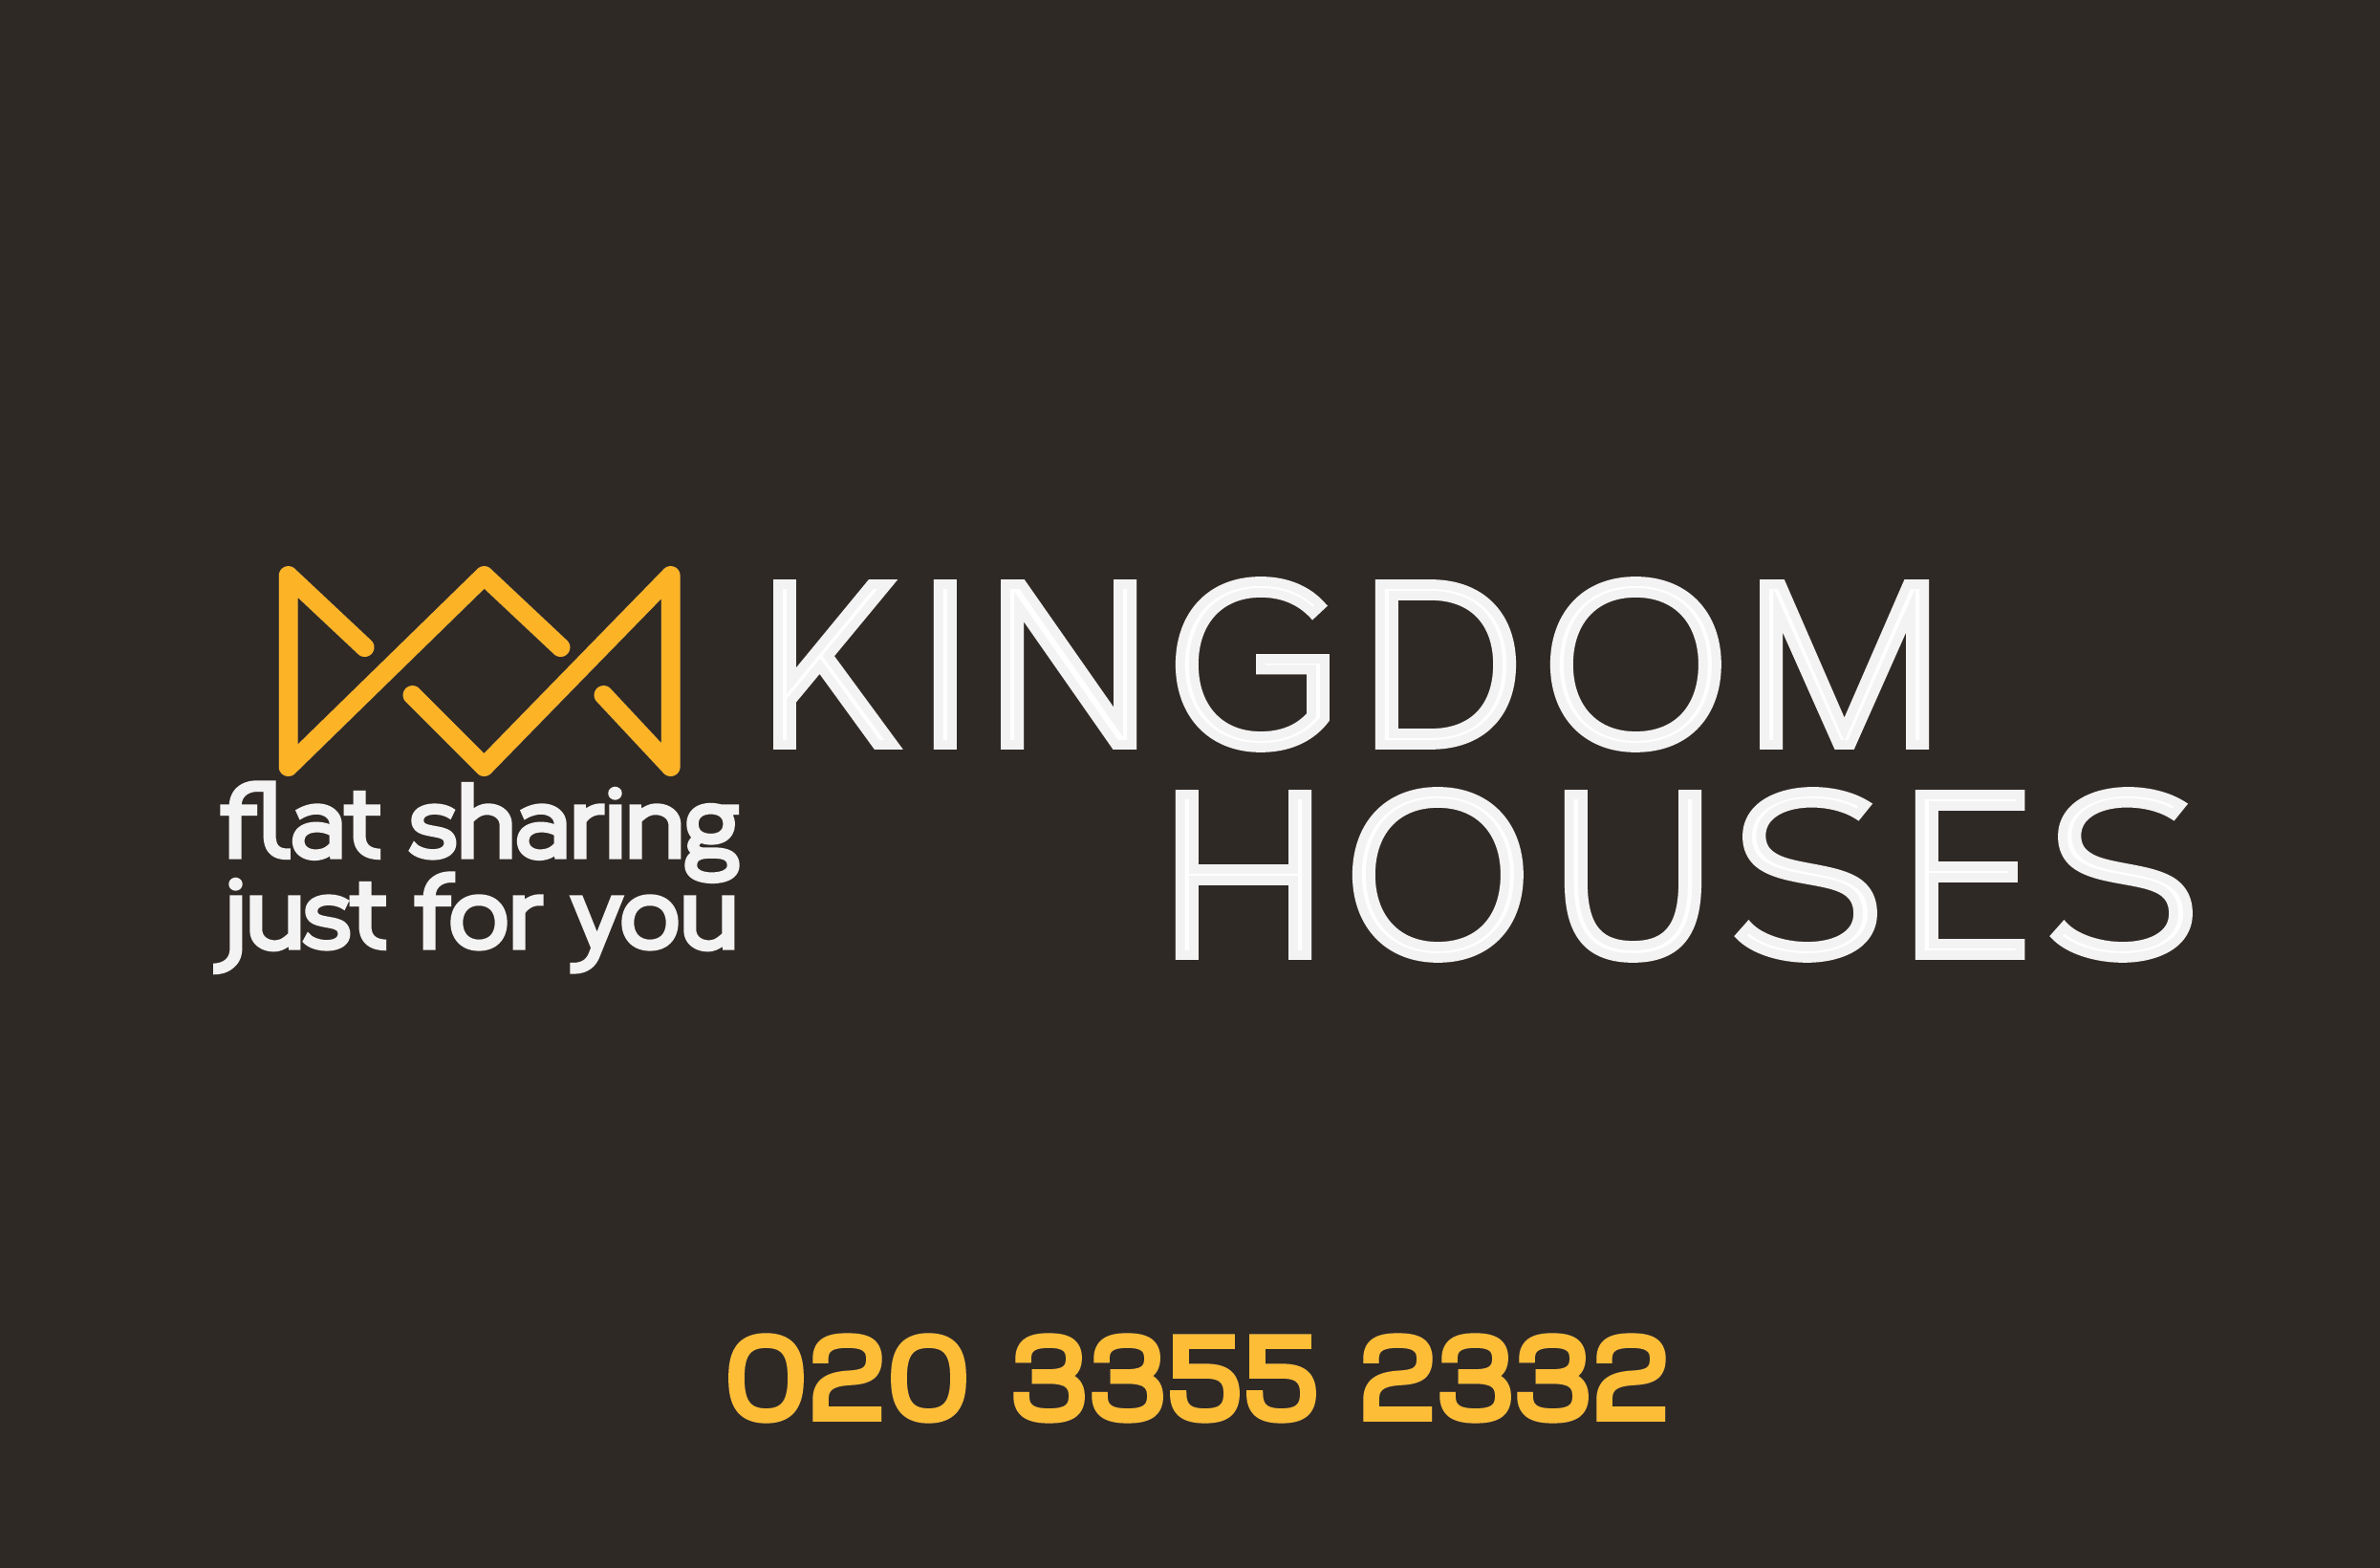 Kingdom-Houses-front